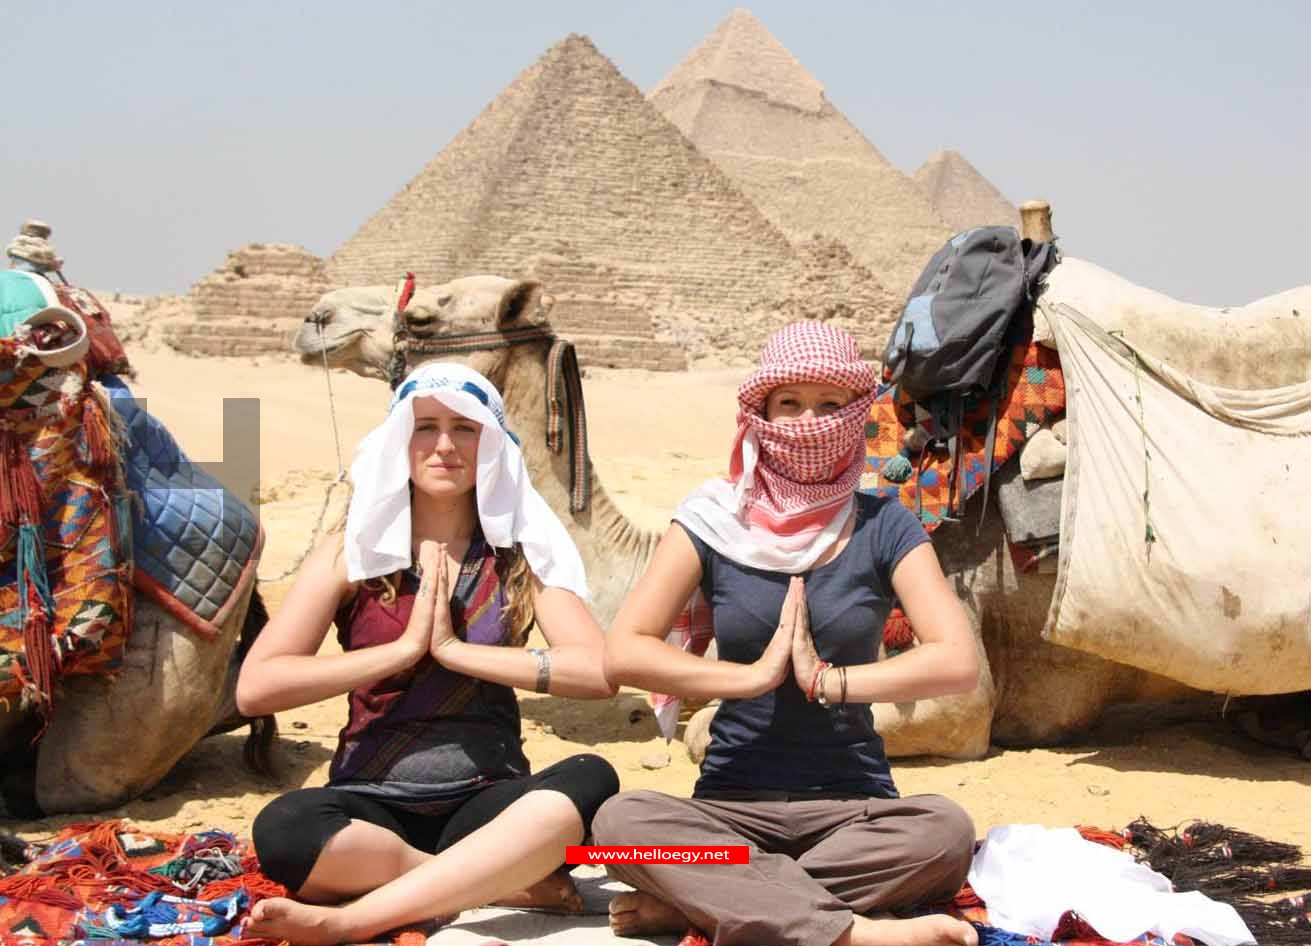 Tourists make cautious return to Egypt